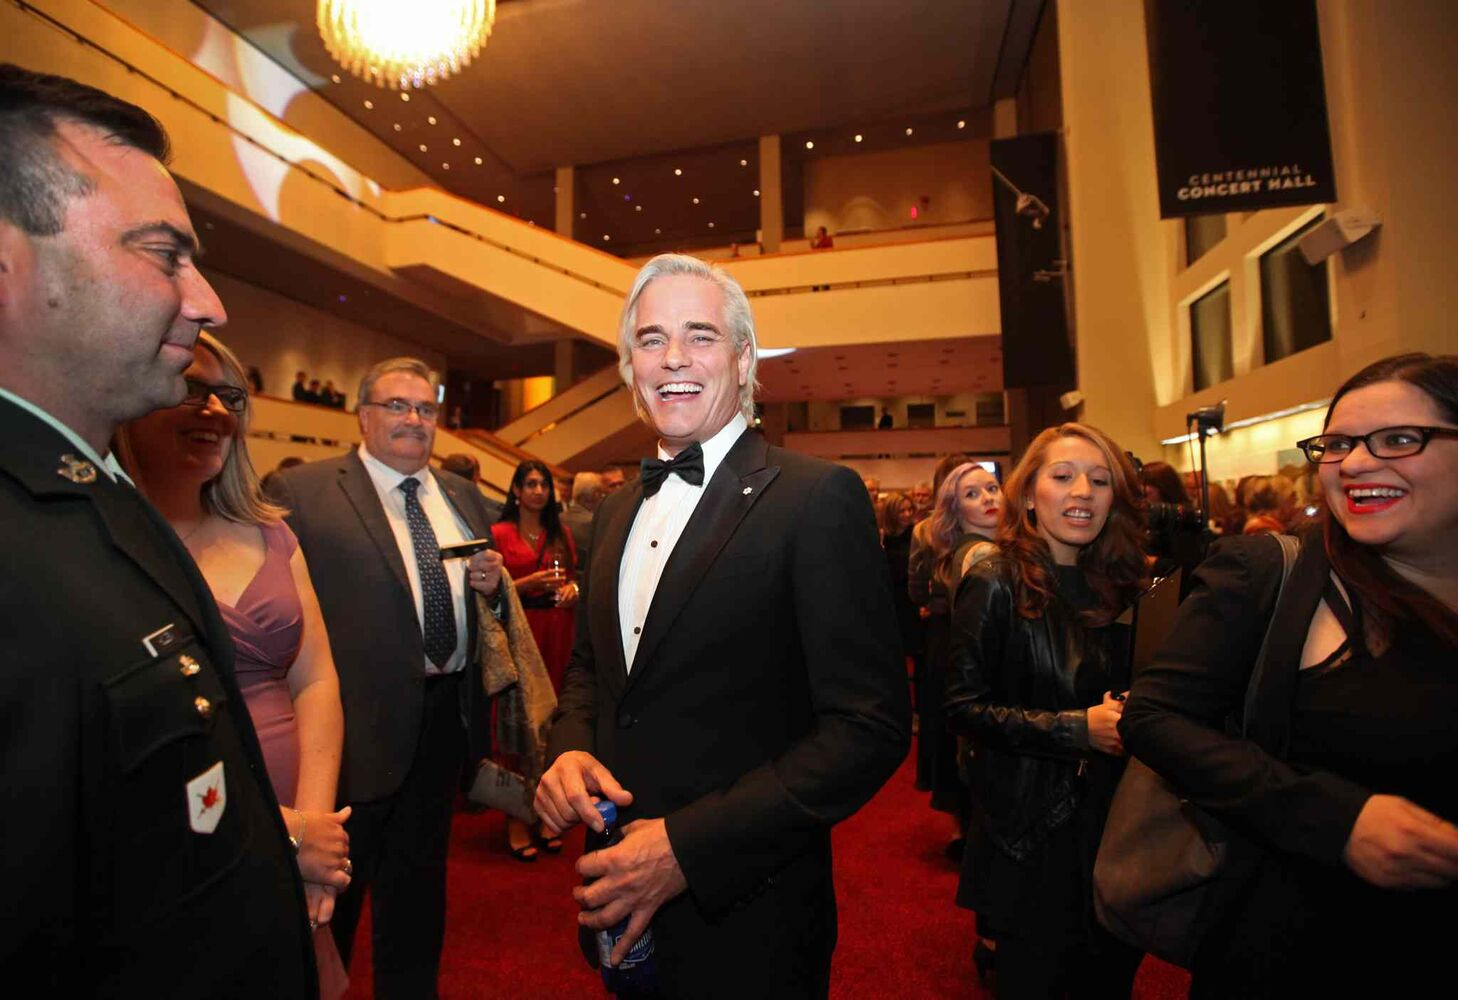 Paul Gross is all smiles as he chats with fellow crew members of Hyena Road and the VIP crowd on the second level of the Centennial Concert Hall Wednesday evening just prior to an exclusive screening of the show. (Ruth Bonneville / Winnipeg Free Press)